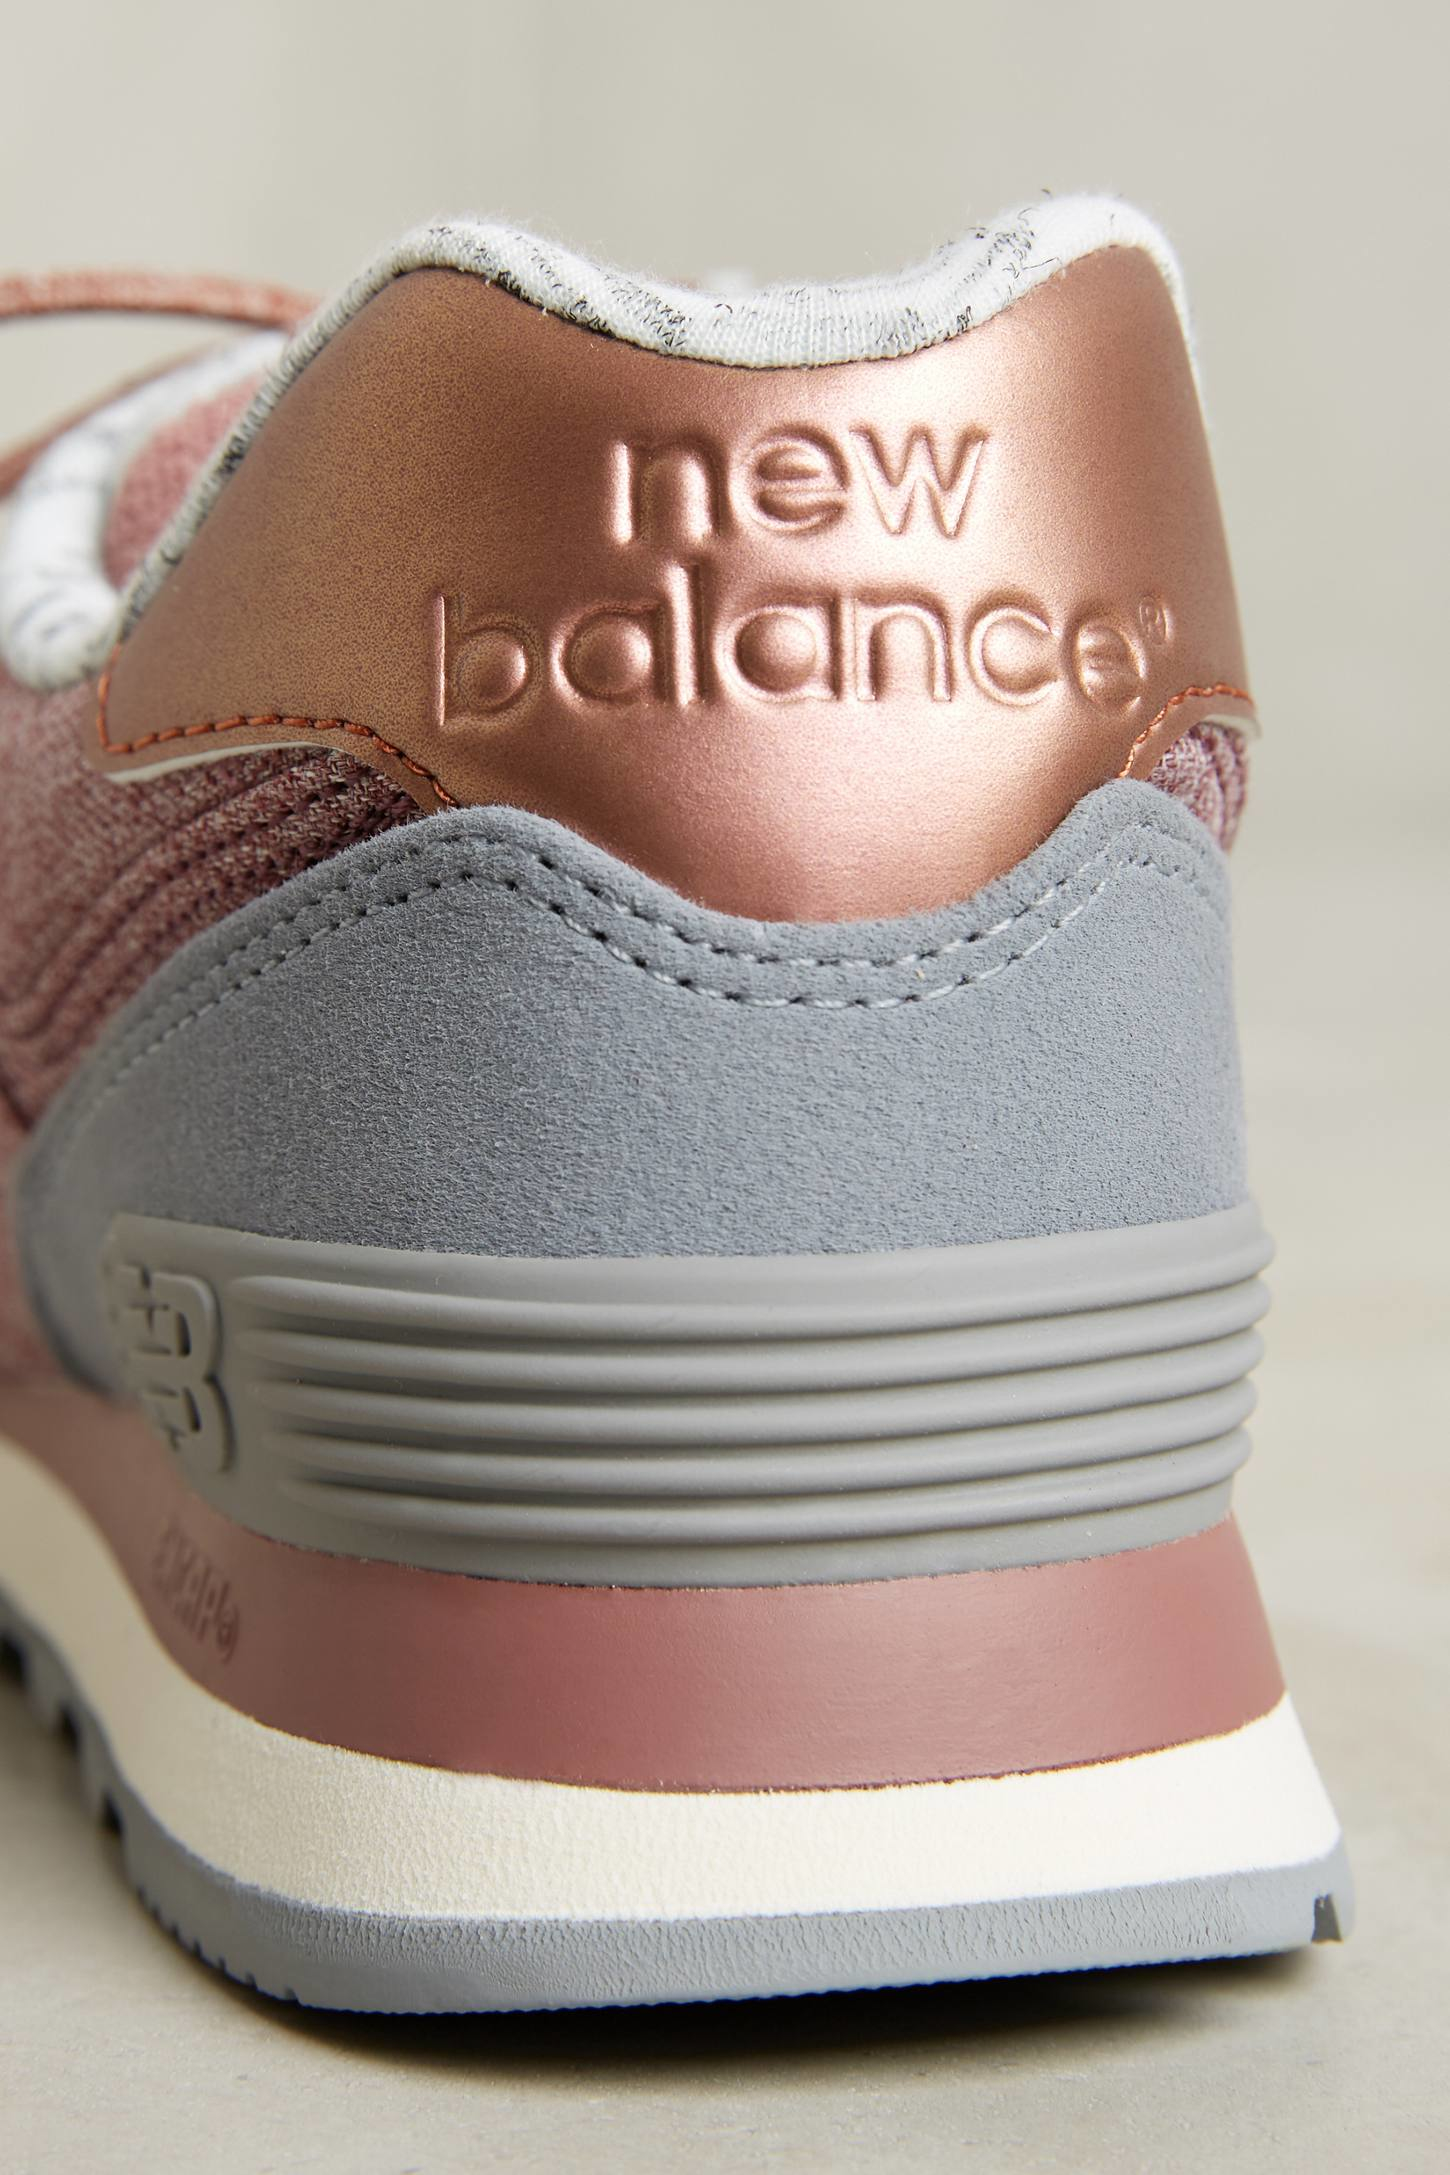 lyst new balance new blance 574 rose gold sneakers. Black Bedroom Furniture Sets. Home Design Ideas